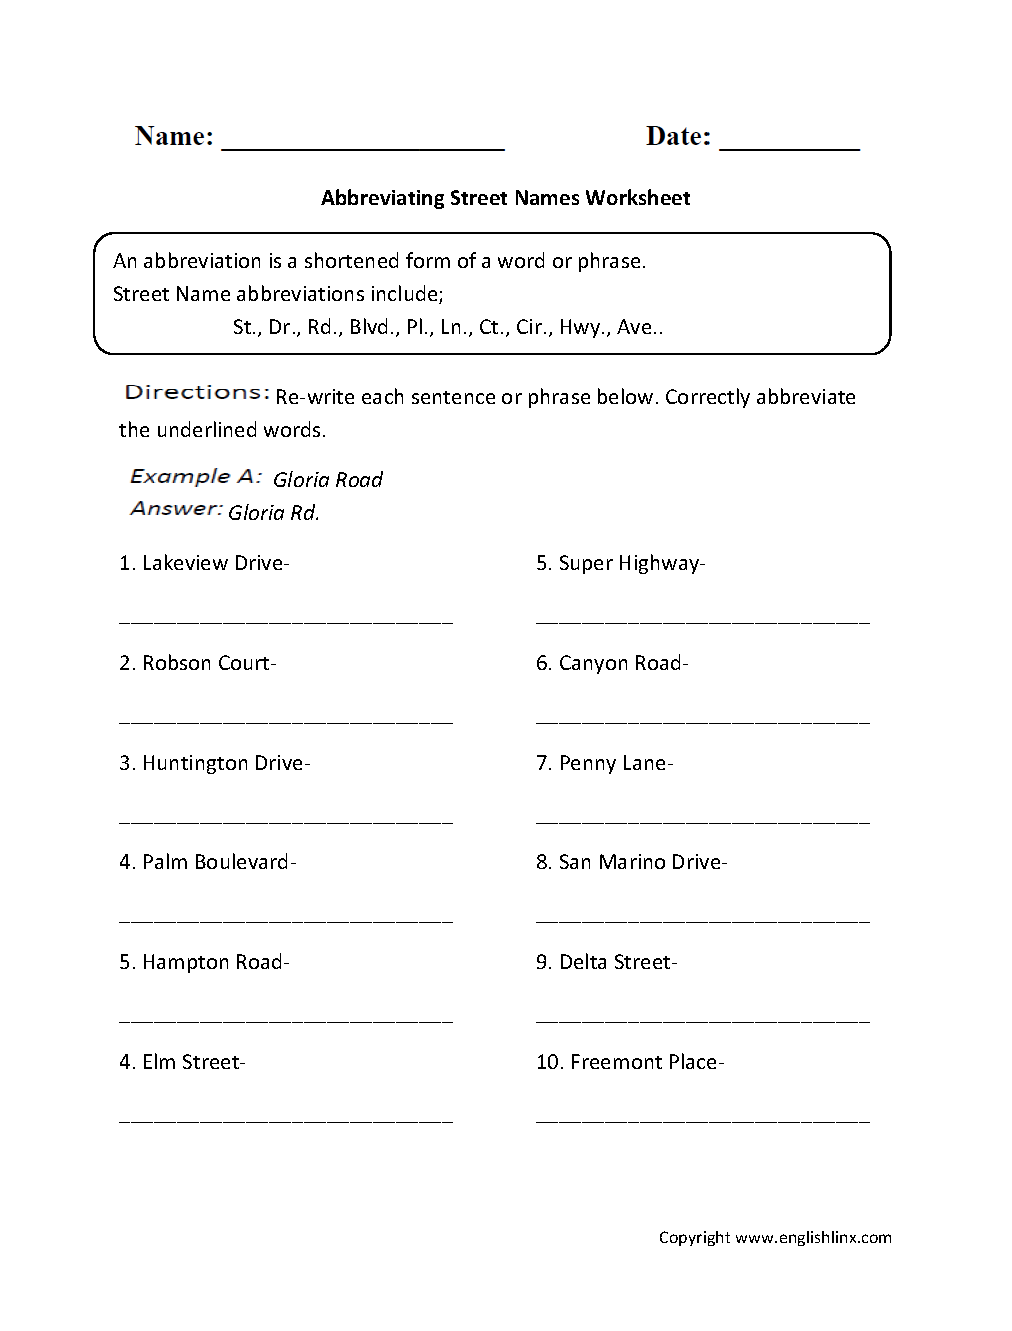 worksheet Abbreviations Worksheets 17 images about addition worksheets on pinterest street names math and tables